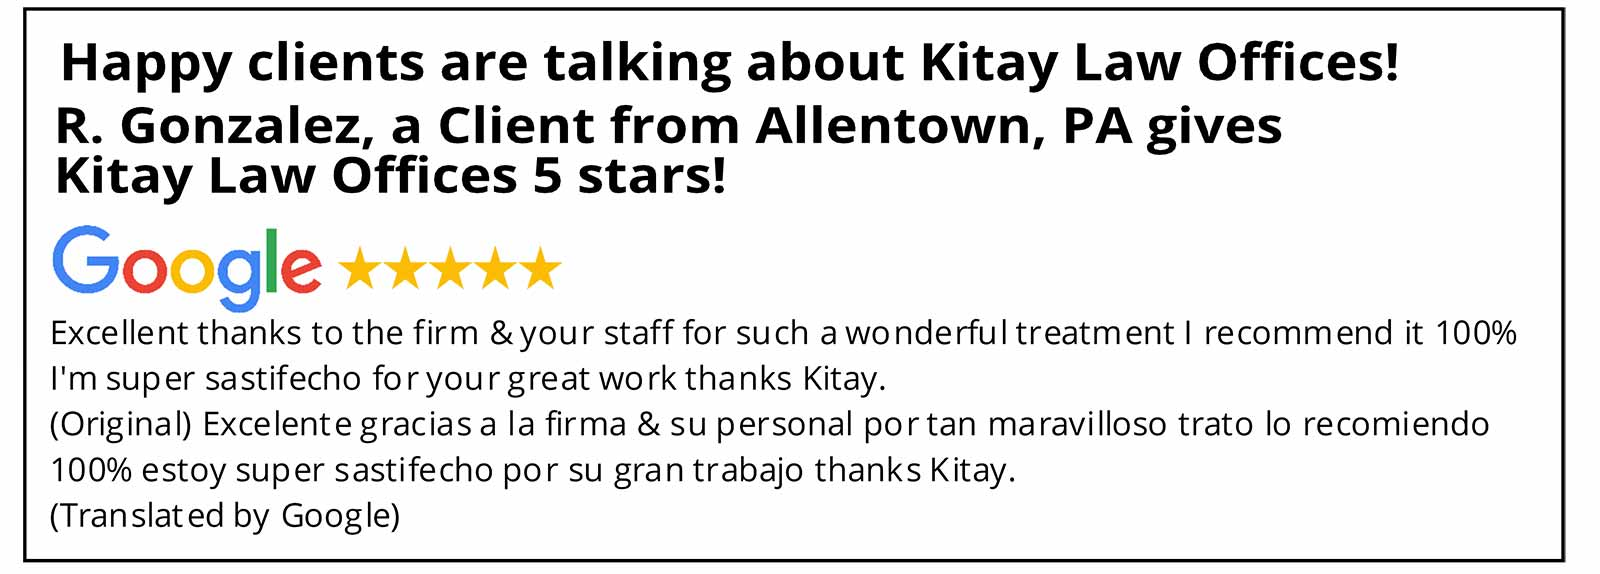 Allentown Car Accident Lawyer Review - Kitay Law Offices